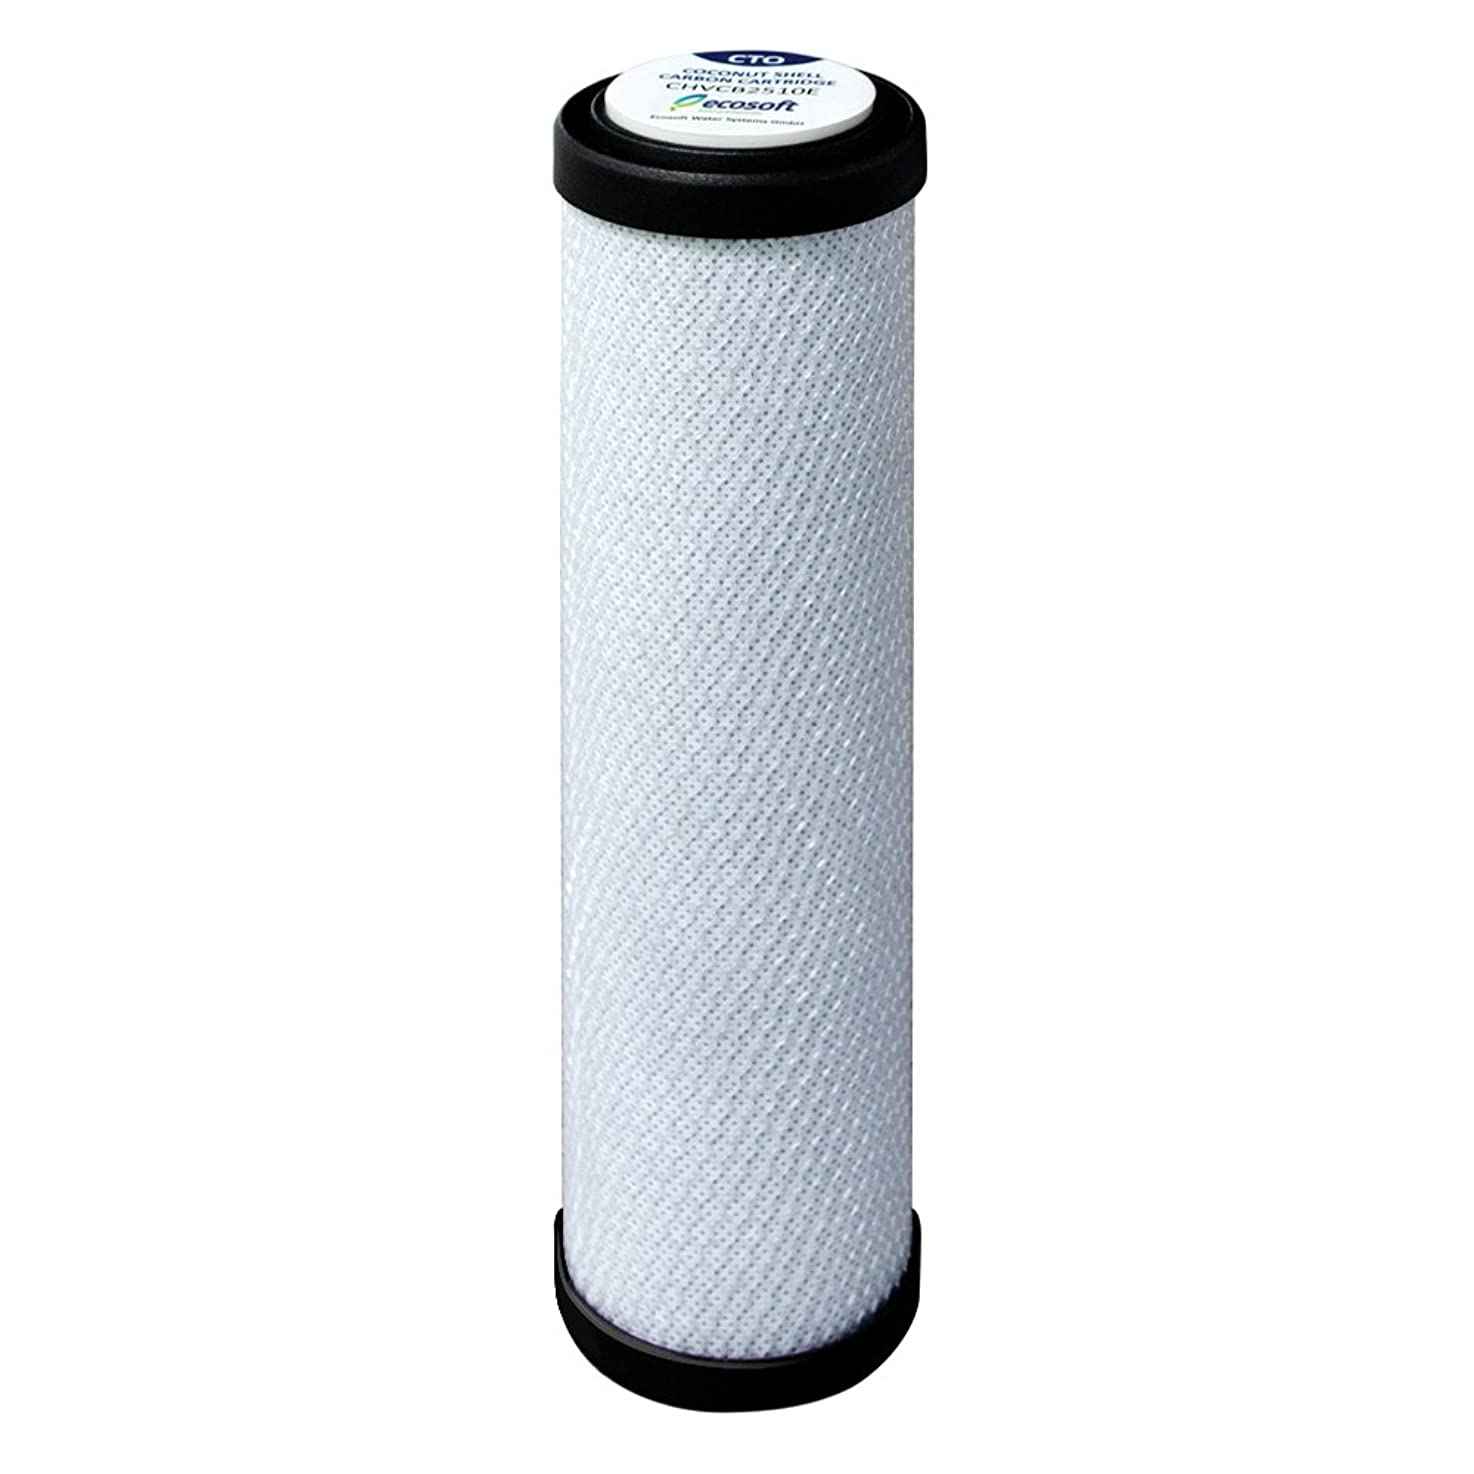 Ecosoft Countertop Water Replacement Filter Cartridge with Coconut-Based Carbon Block Filtration System